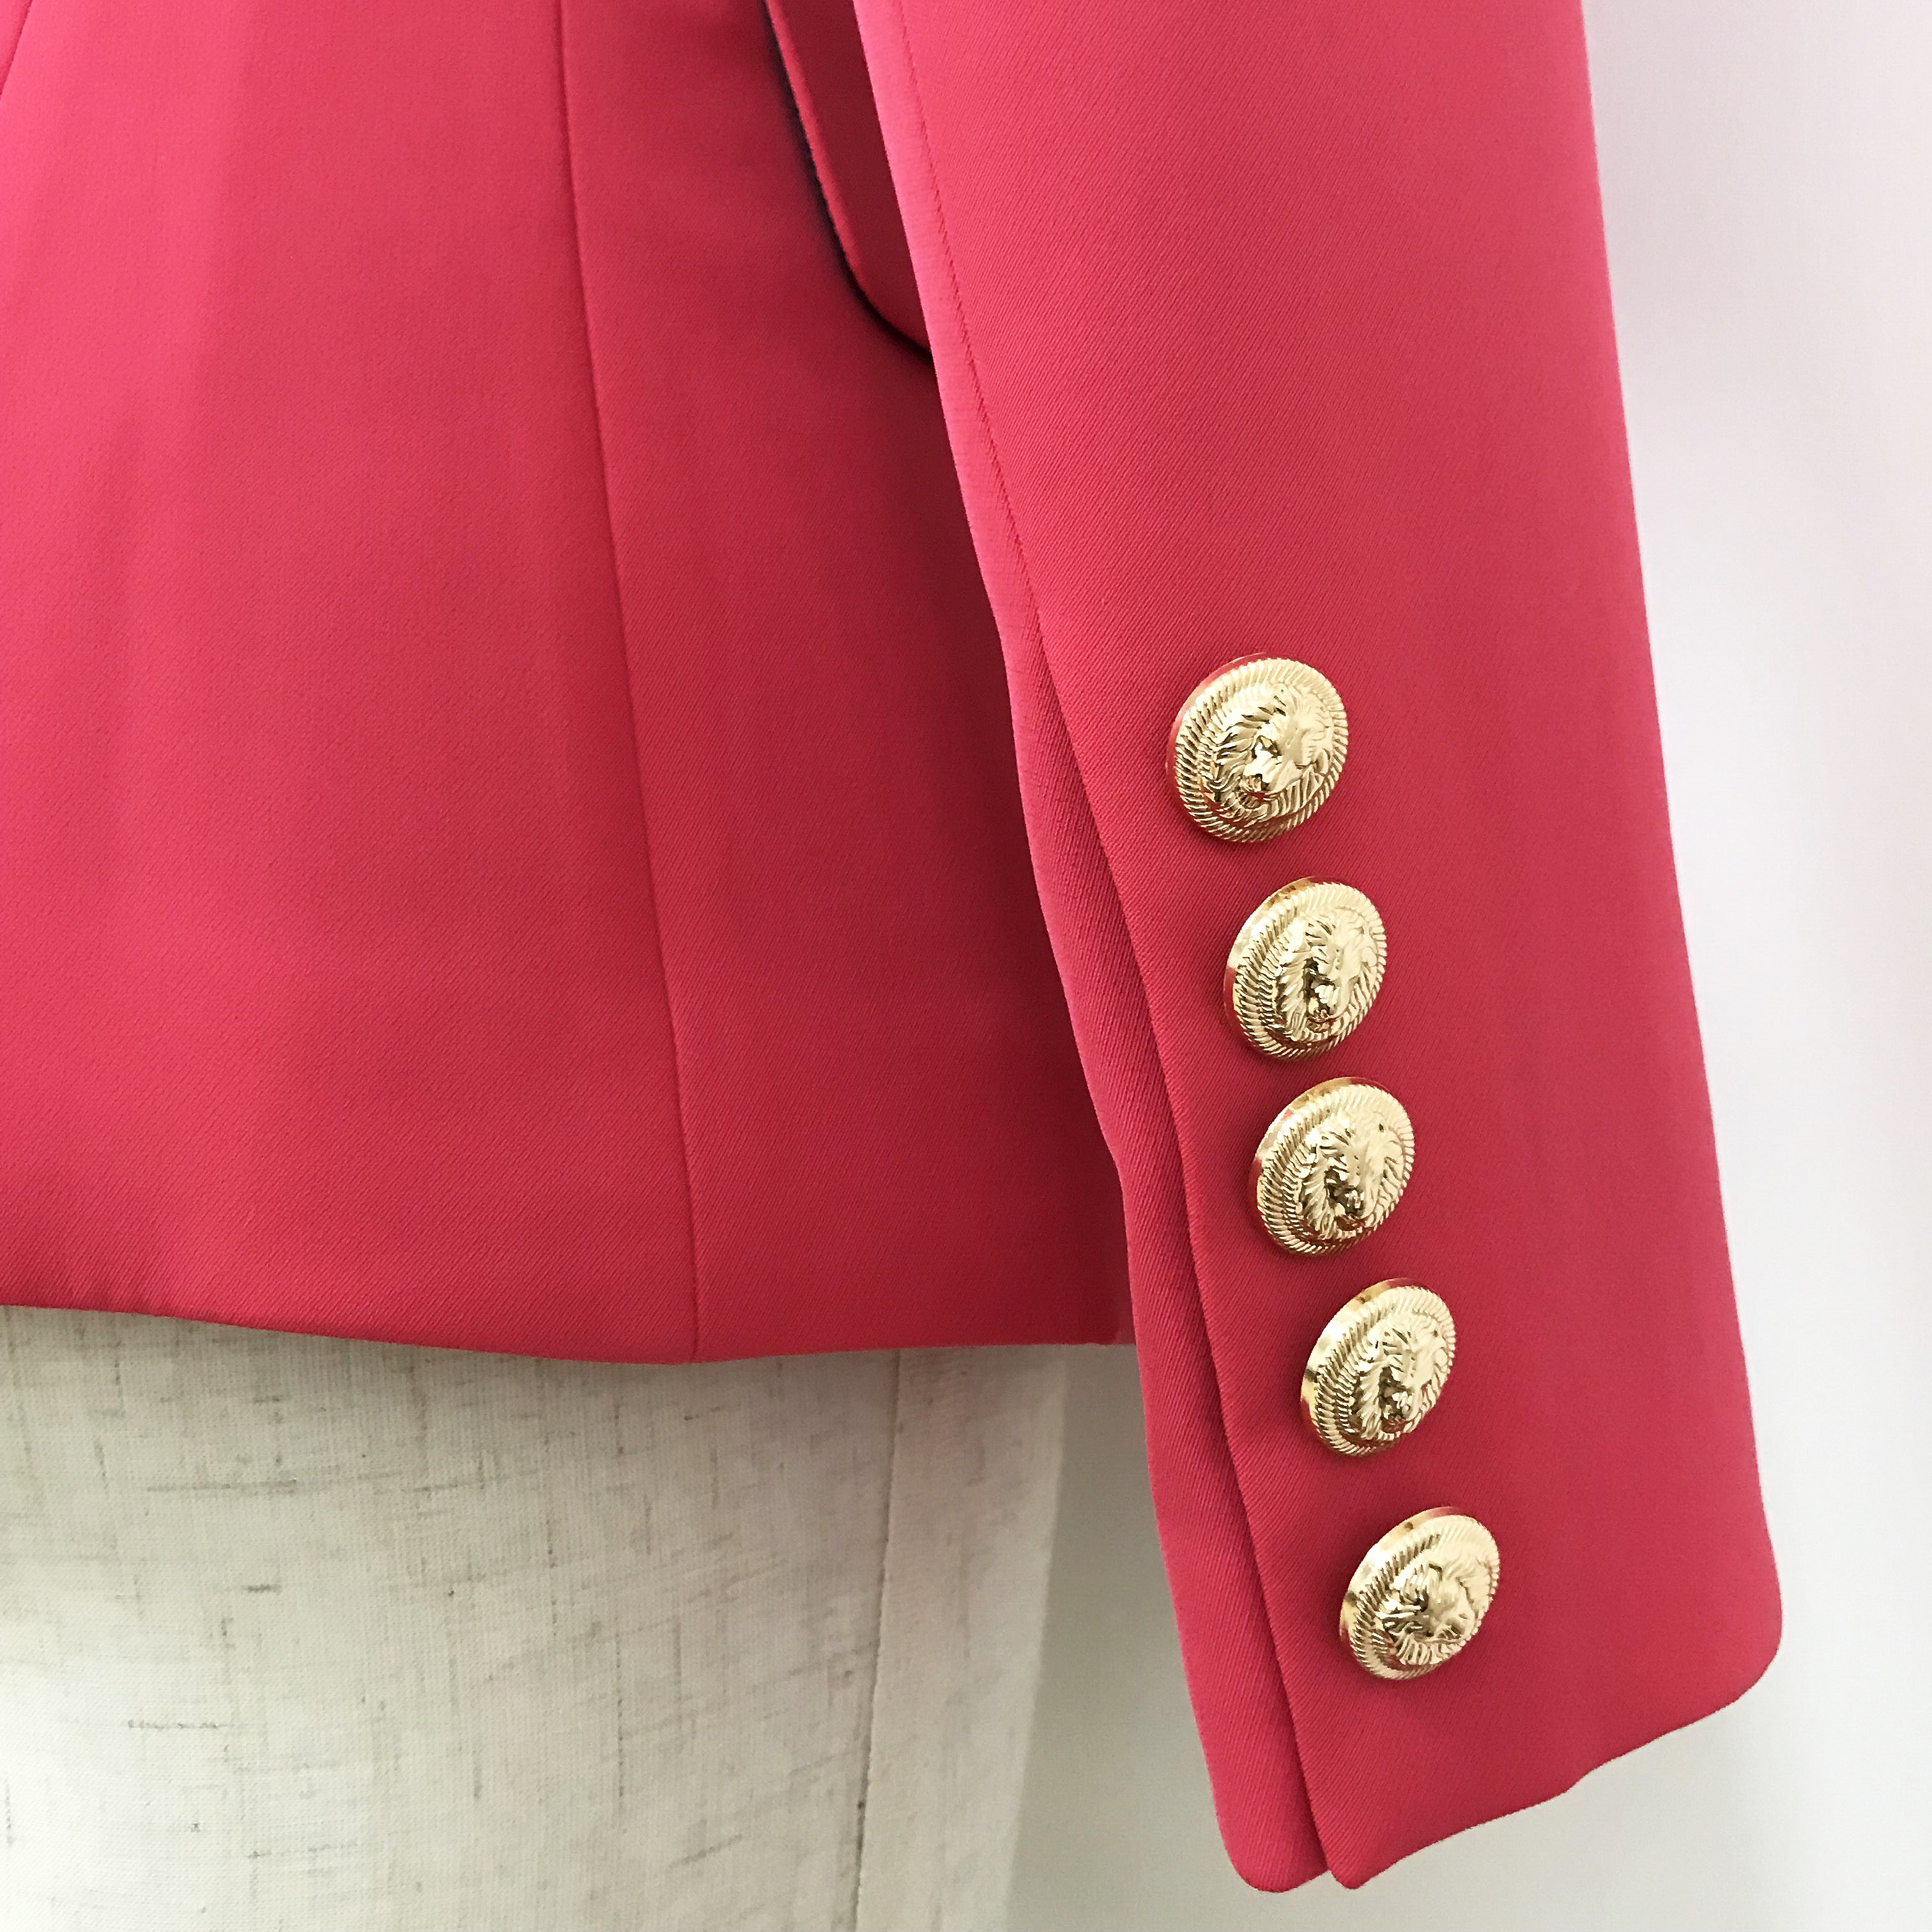 HIGH QUALITY Newest 2019 Designer Blazer Women's Double Breasted Metal Lion Buttons Slim Fitting Blazer Jacket Watermelon Red